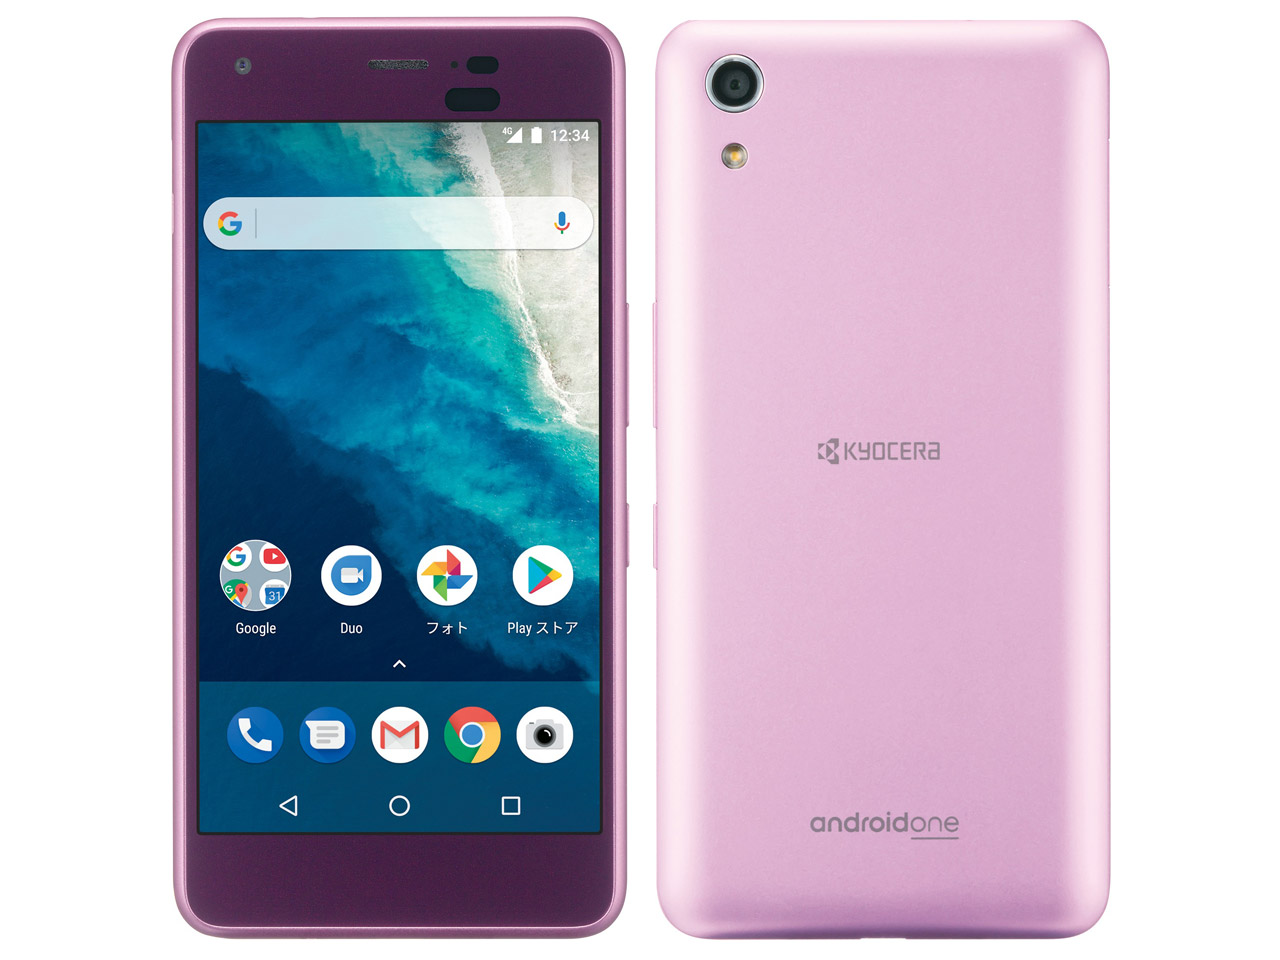 Android One S4 ワイモバイル [ピンク] の製品画像